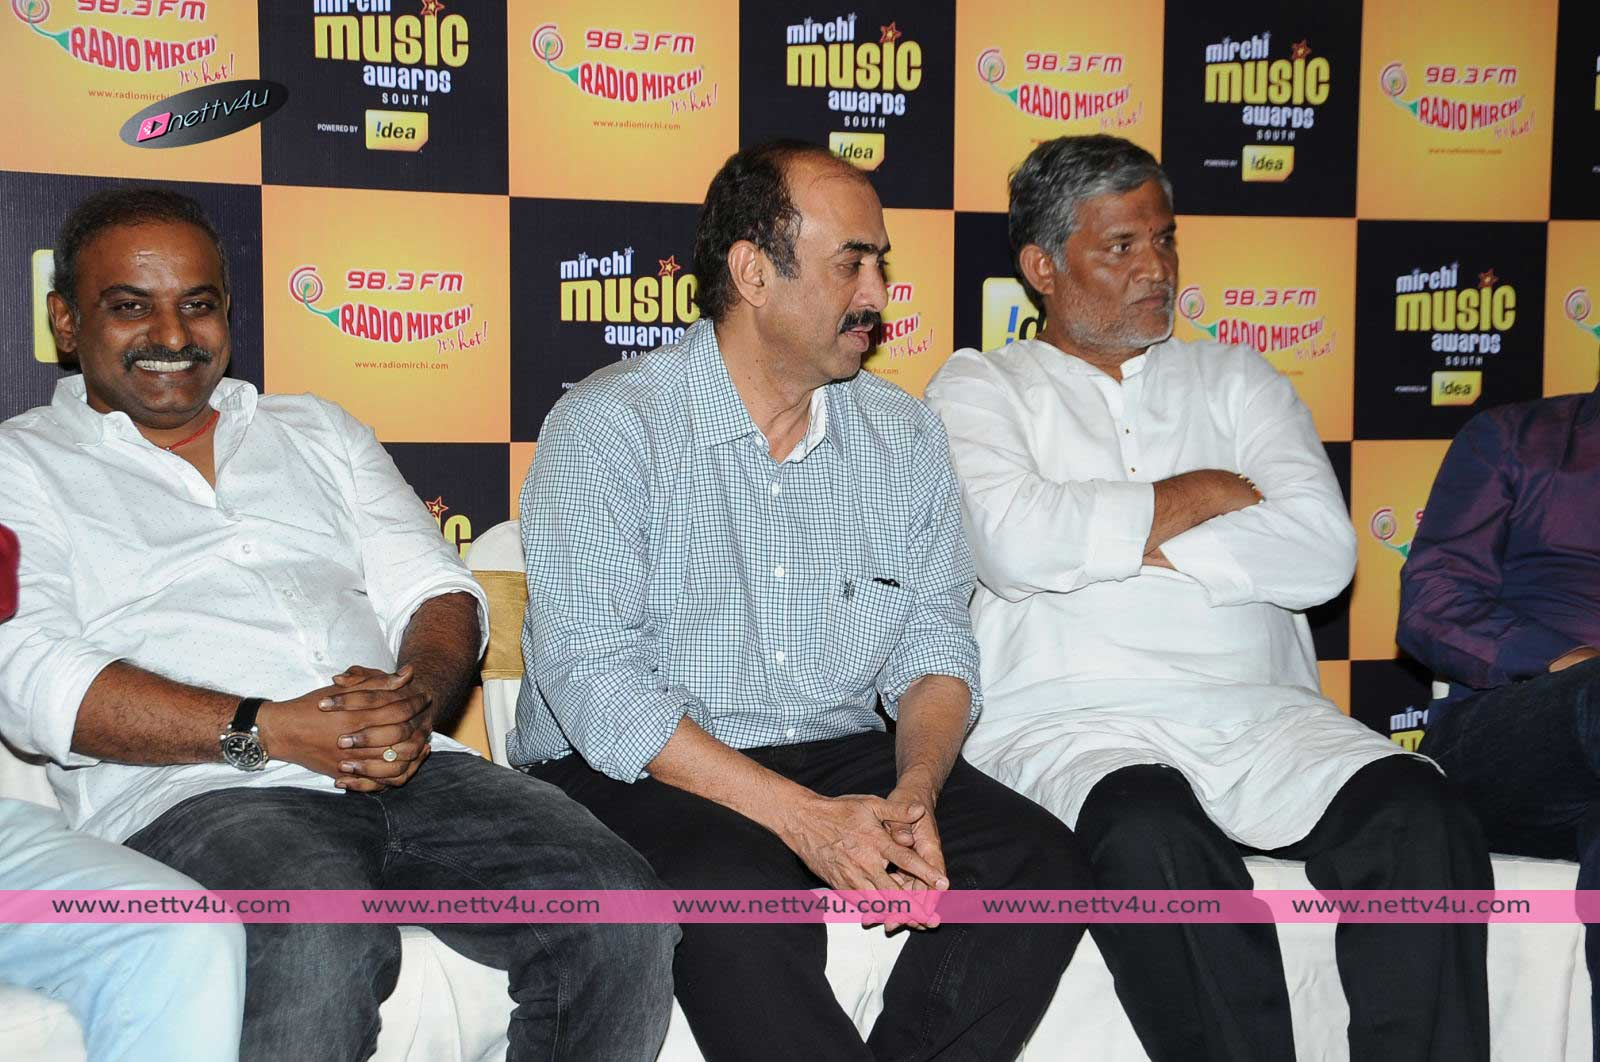 radio mirchi music awards pm 1 01